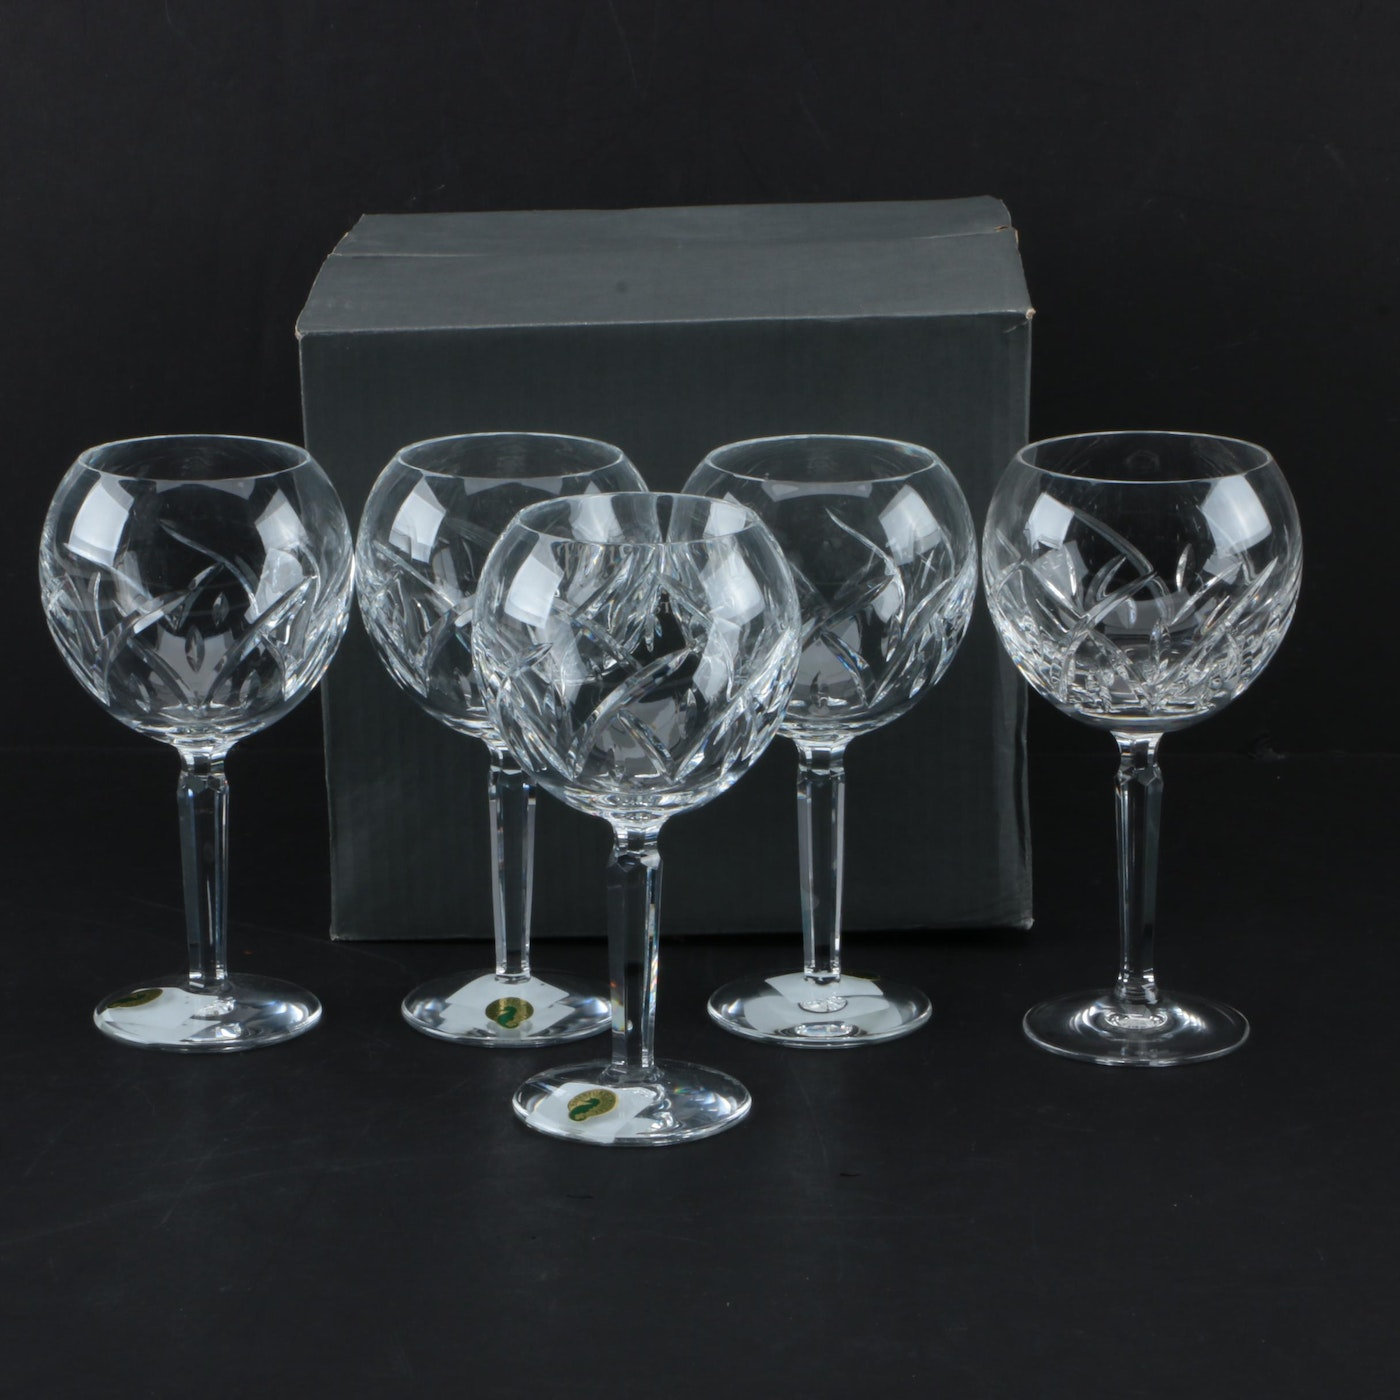 Waterford Crystal Quot Lucerne Quot Balloon Wine Glasses Ebth